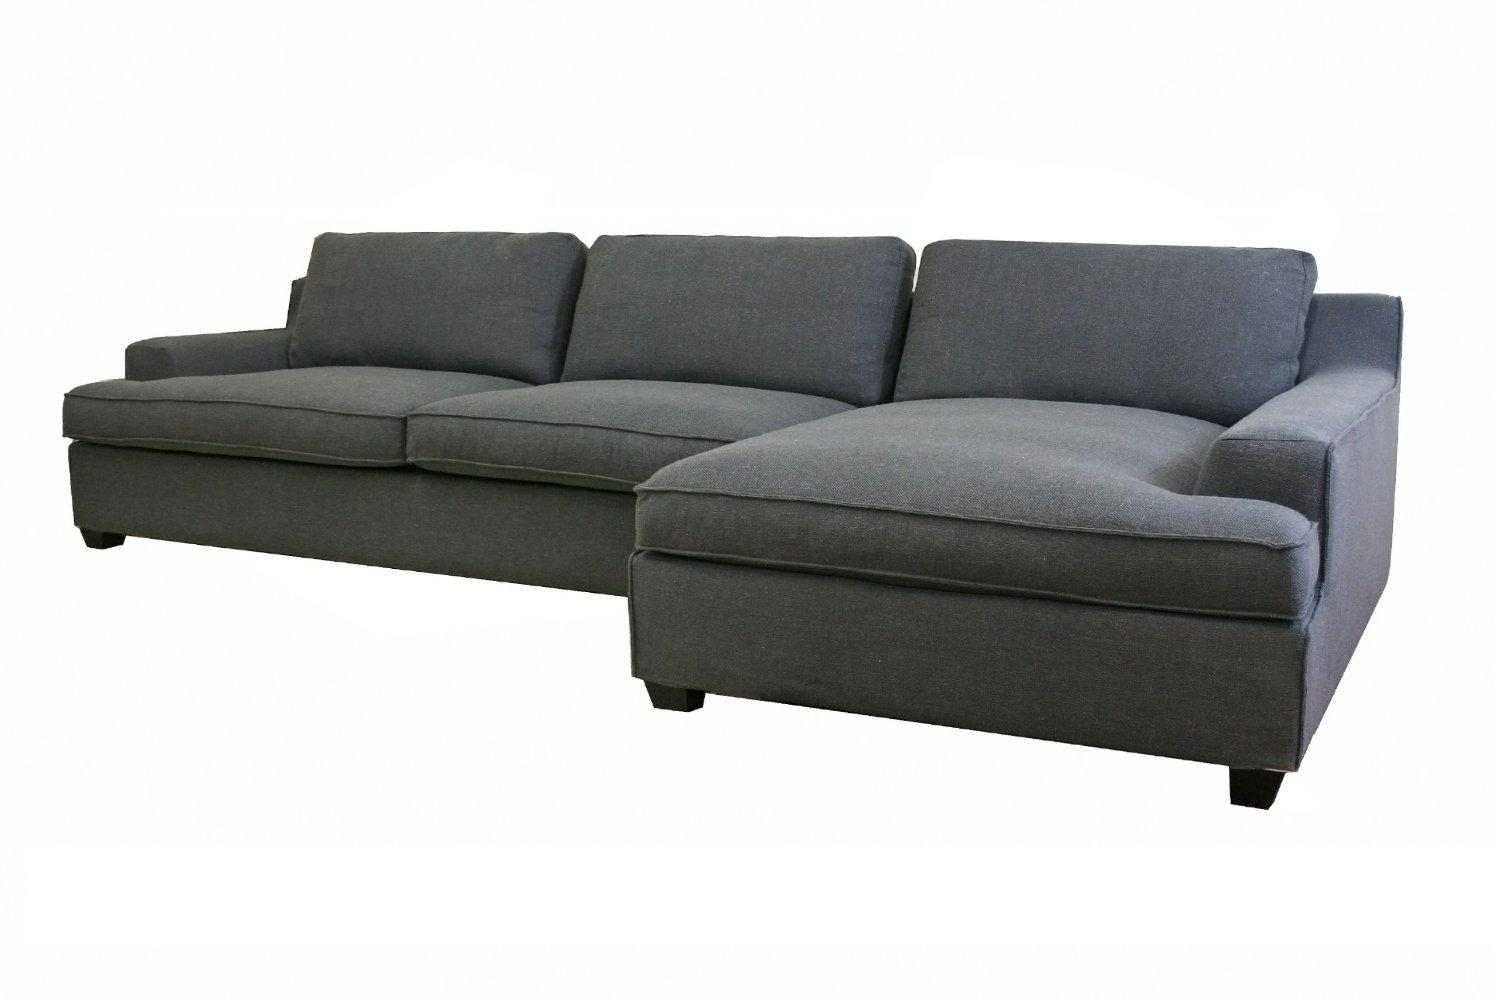 Sectional Sofa With Sleeper And Chaise – Ansugallery In Sectional Sofas With Sleeper And Chaise (Image 14 of 21)